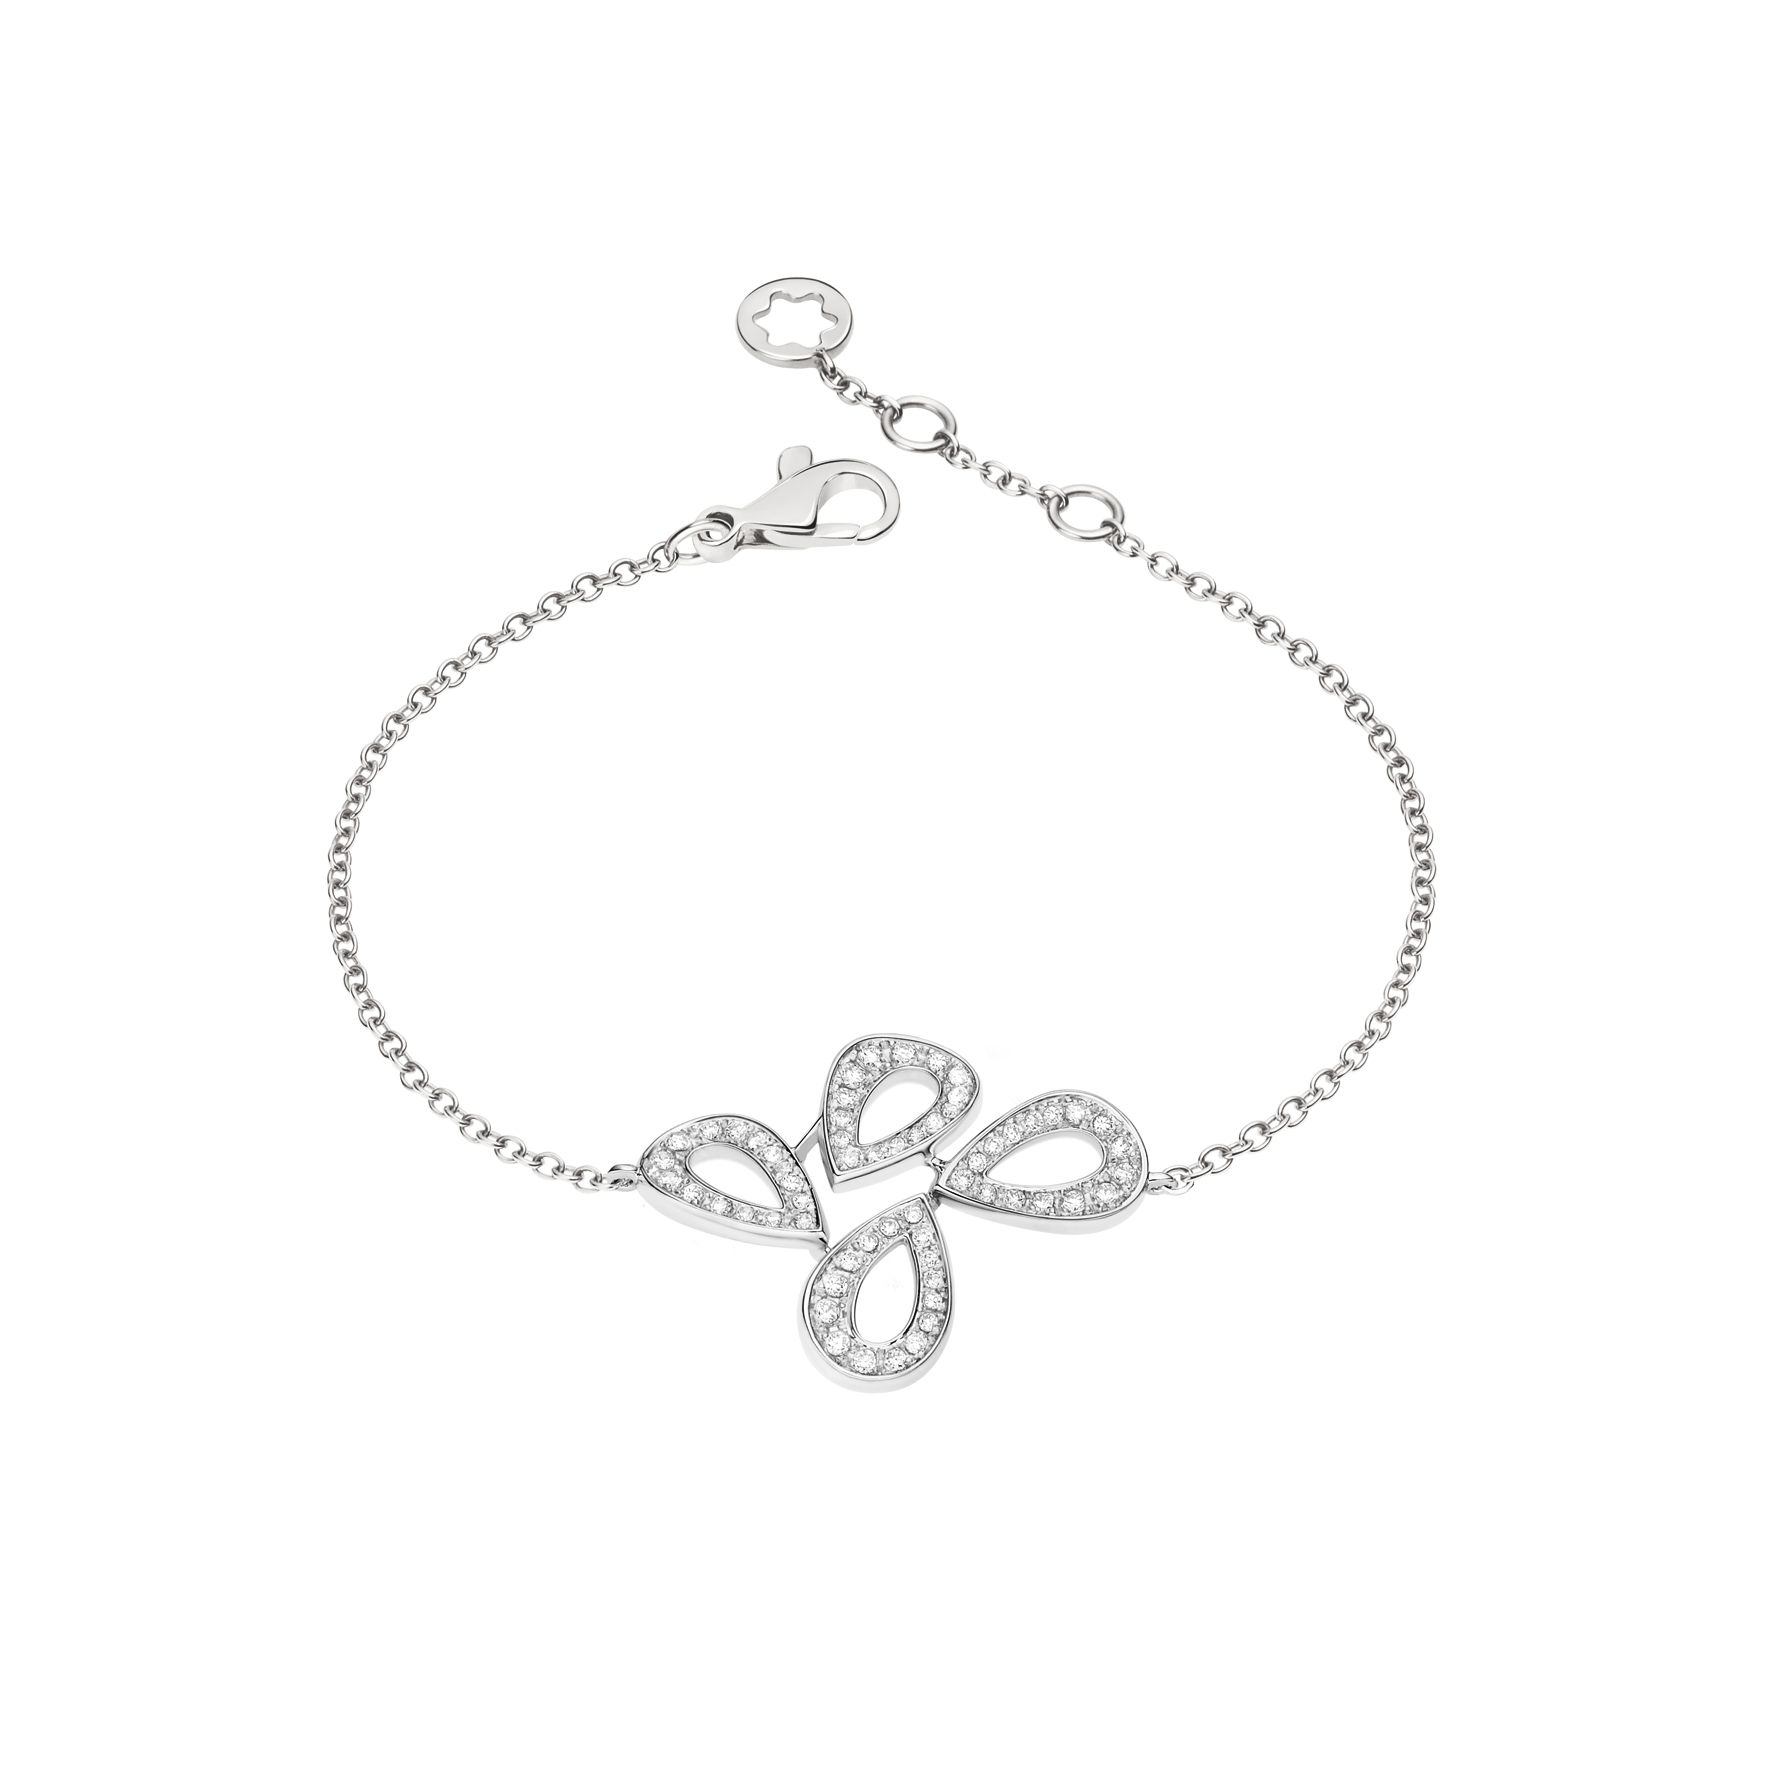 Montblanc_Collection_Princesse_Grace_PetalesdeRose_bracelet